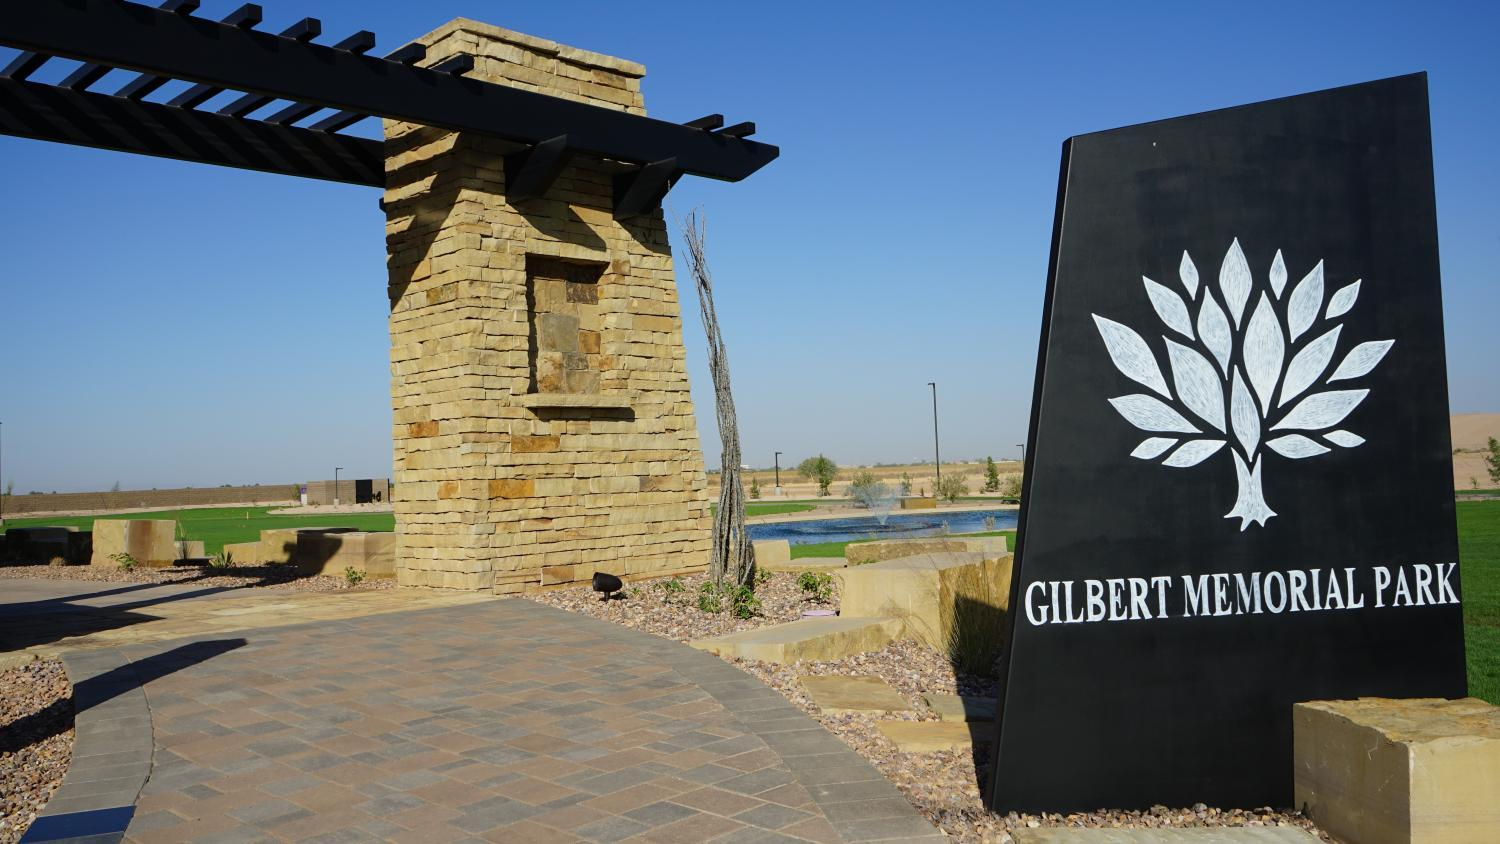 Gilbert Memorial Park Cemetery and Funeral Home